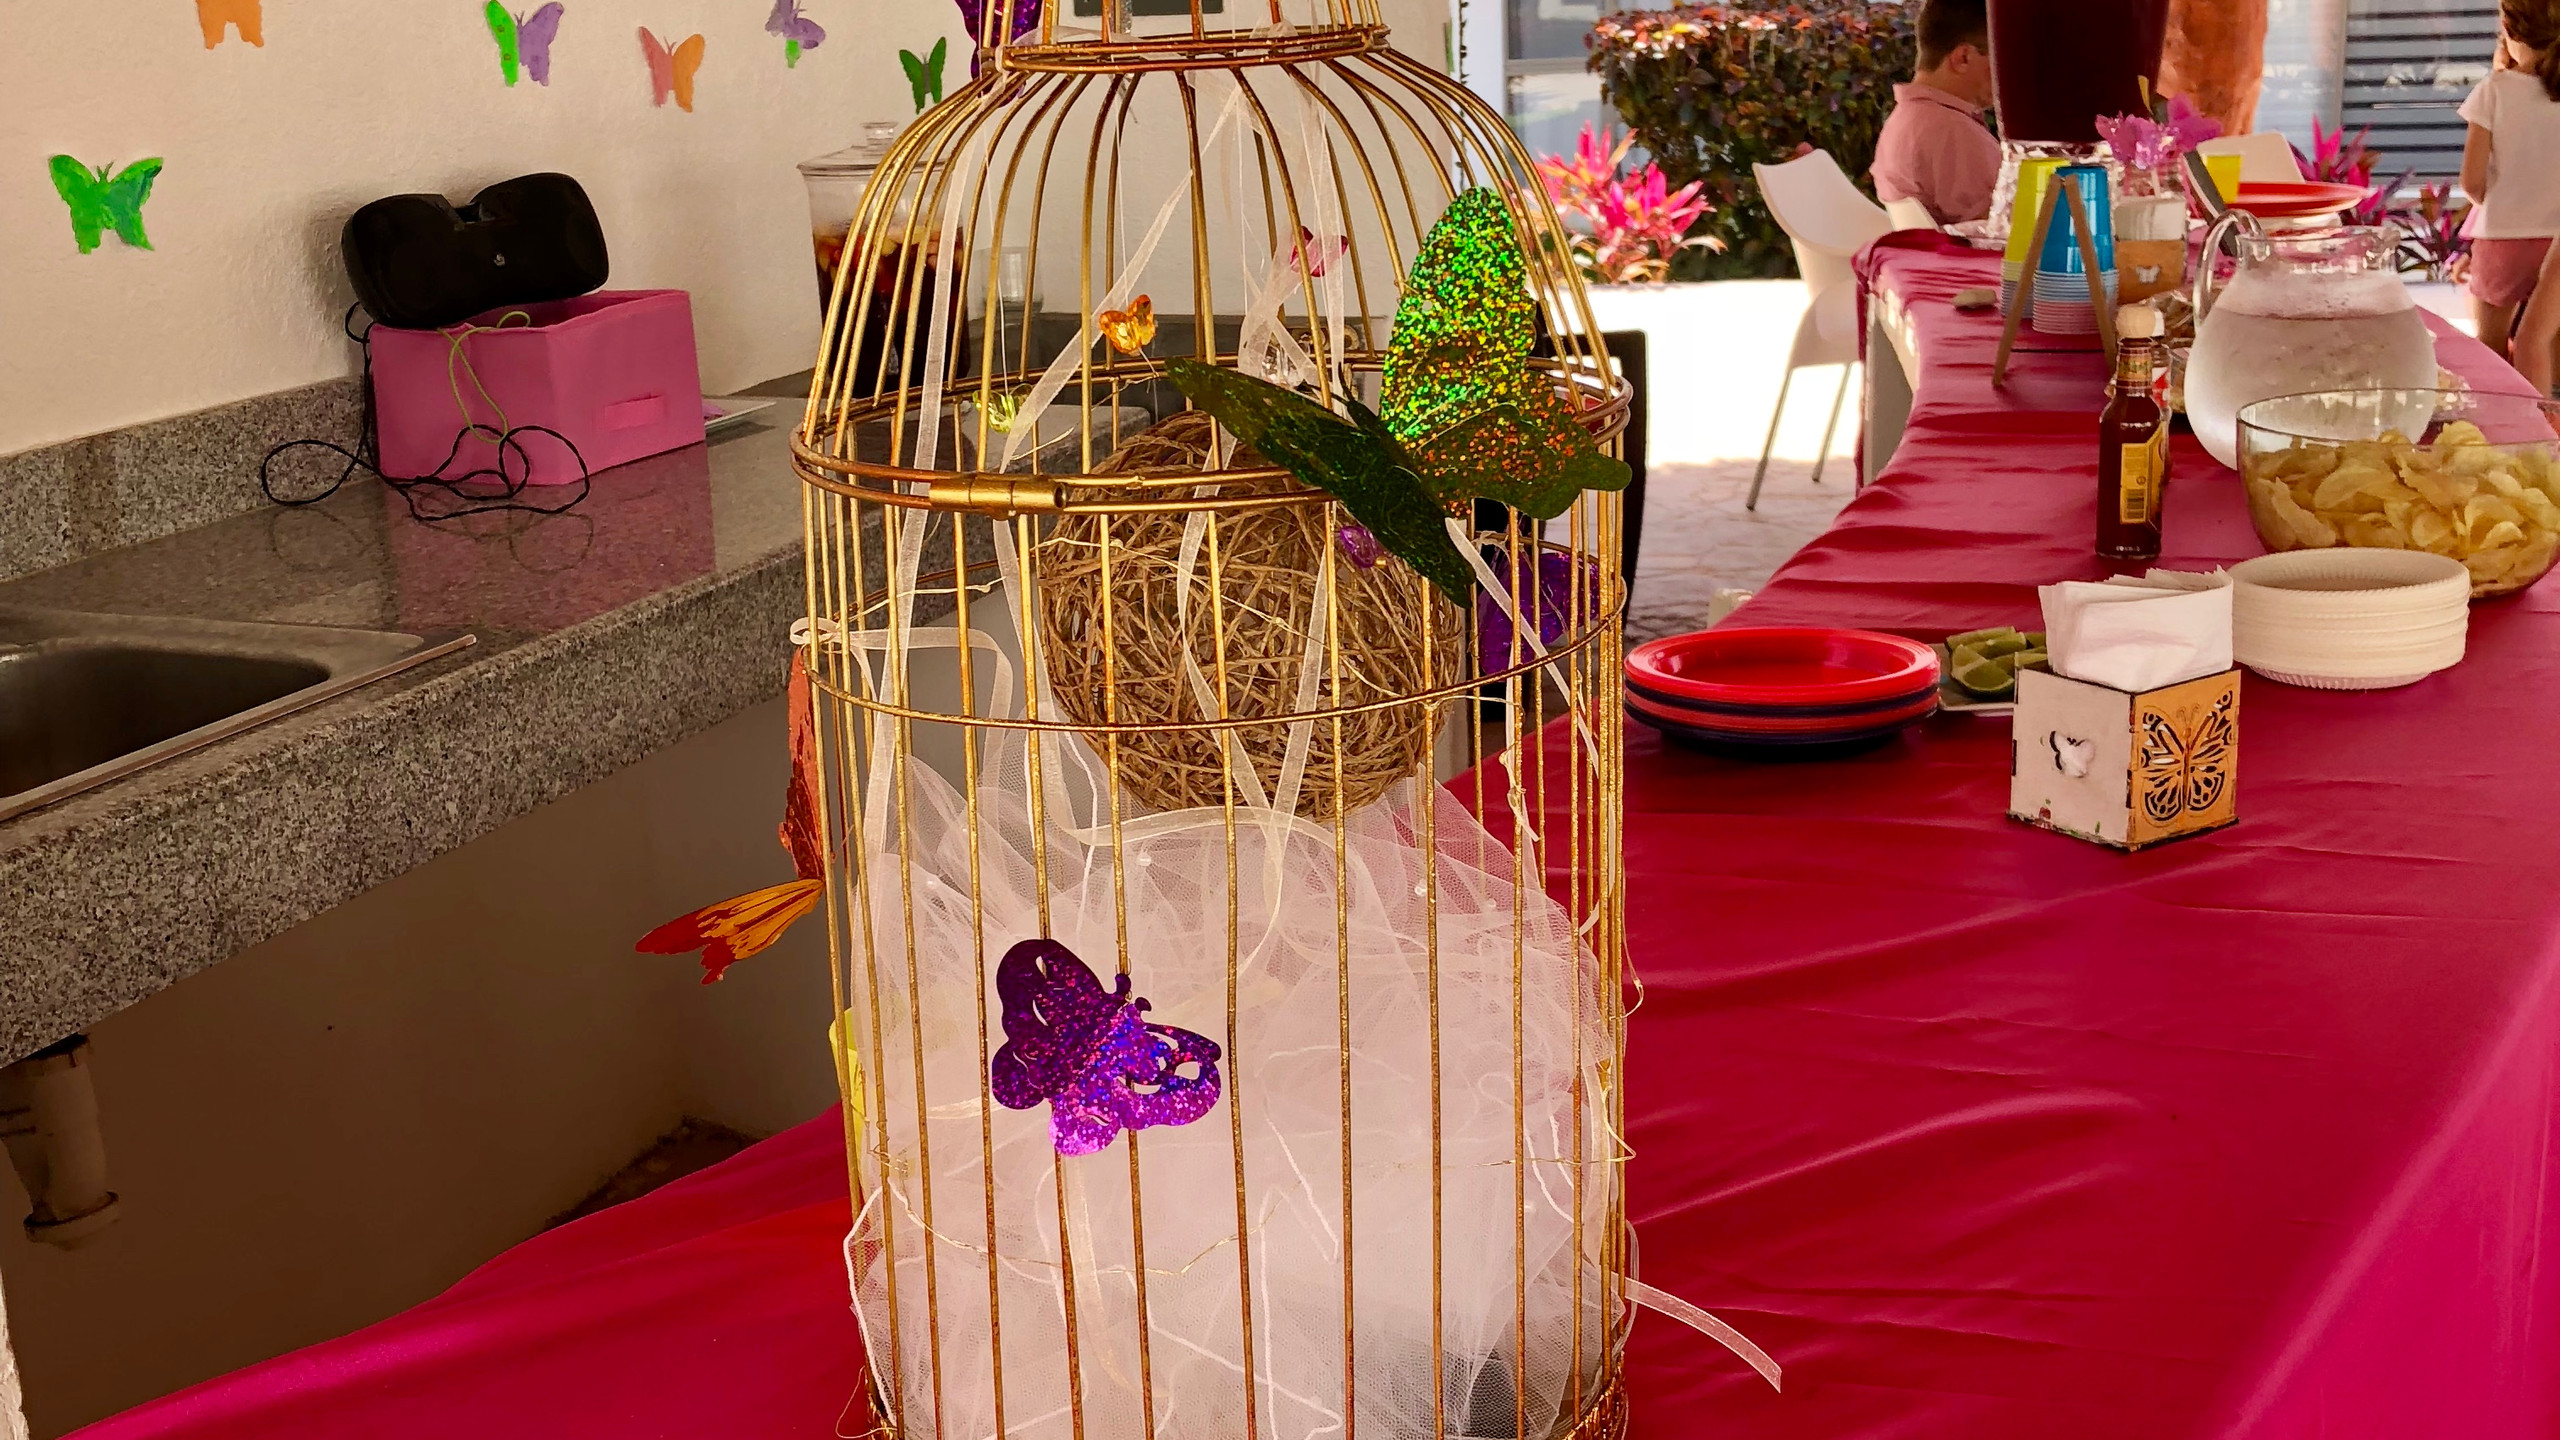 Fell in love with this vintage-looking birdcage so I used it as part of the décor